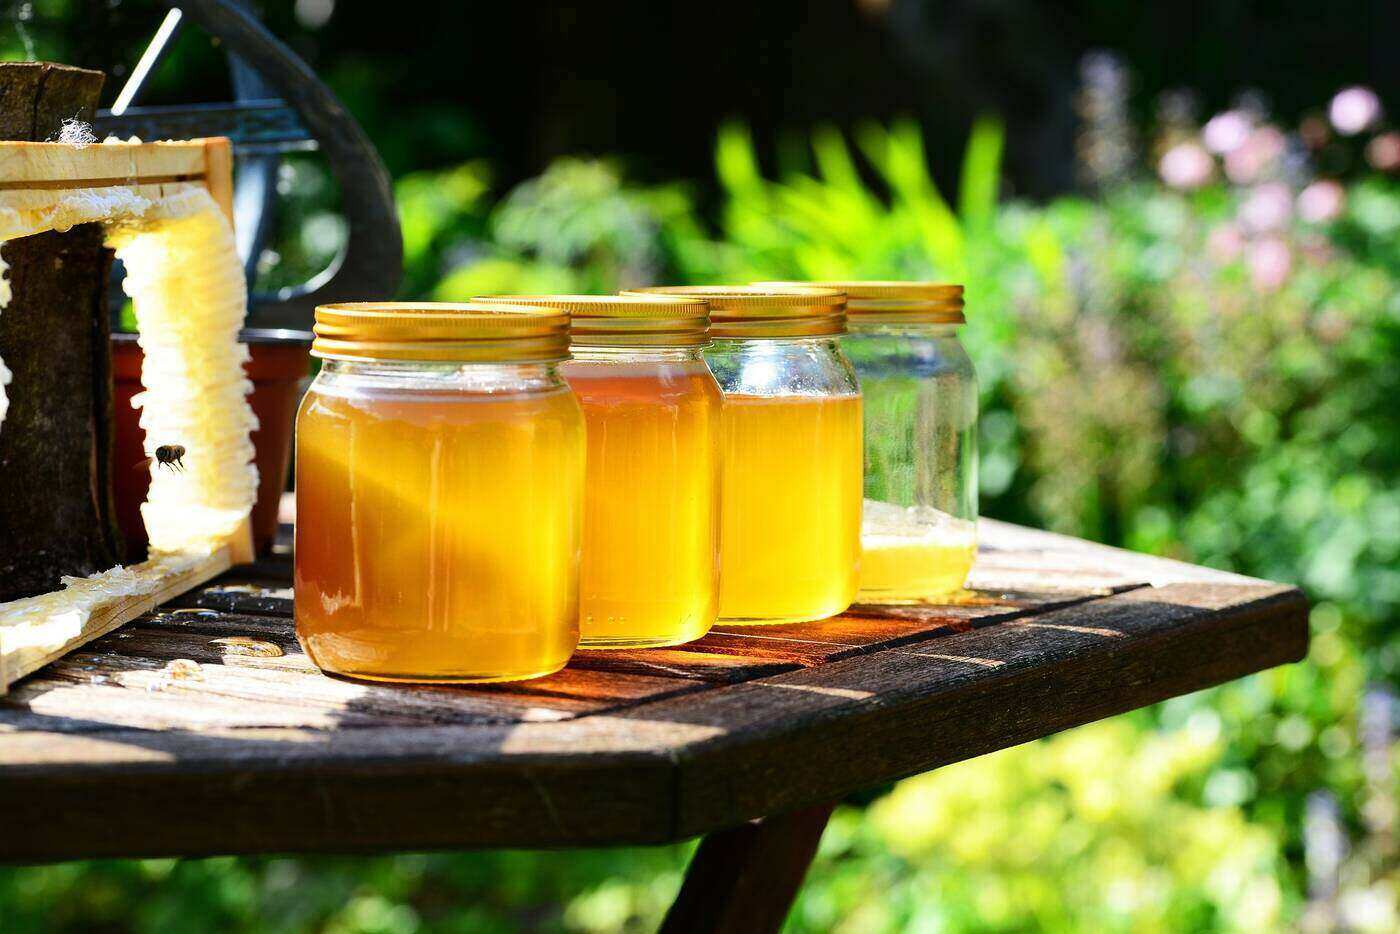 Home.fit honey-jars-video-review An exploration of sustainable beekeeping [video review]